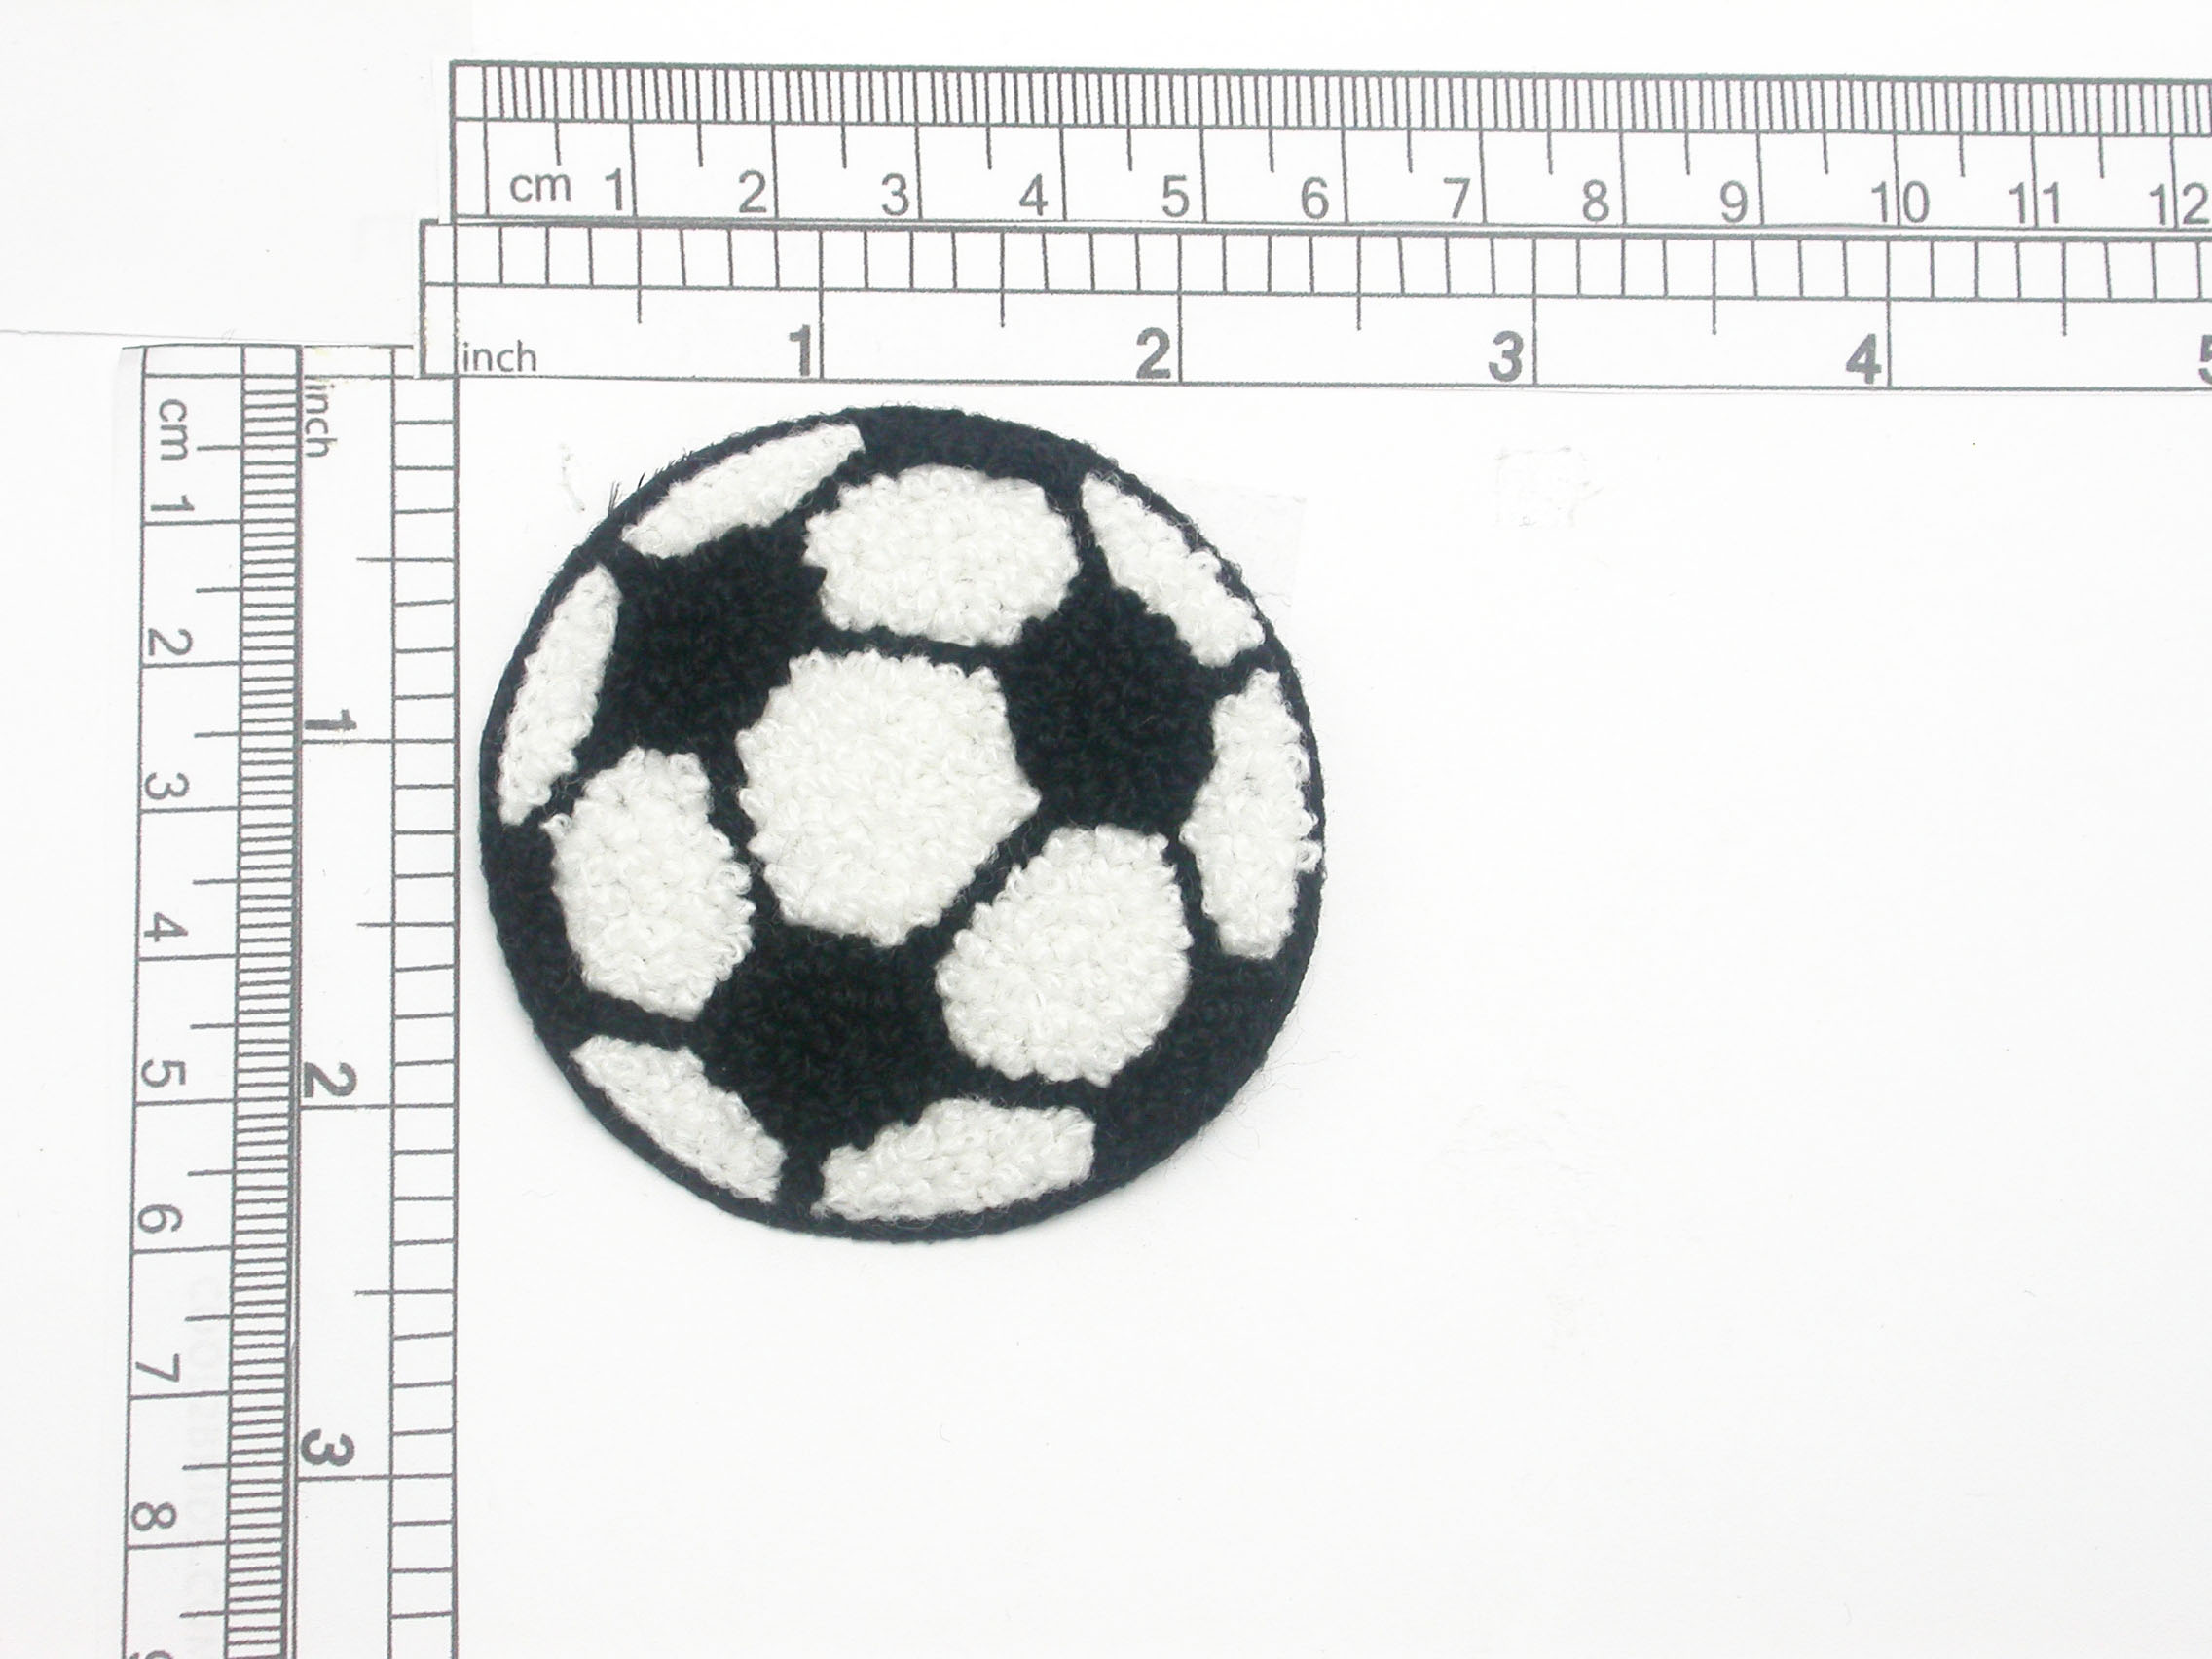 """Soccer Ball Patch Chenille Iron On Embroidered Applique   Measures 2 1/4"""" across x 2 1/4"""" High"""